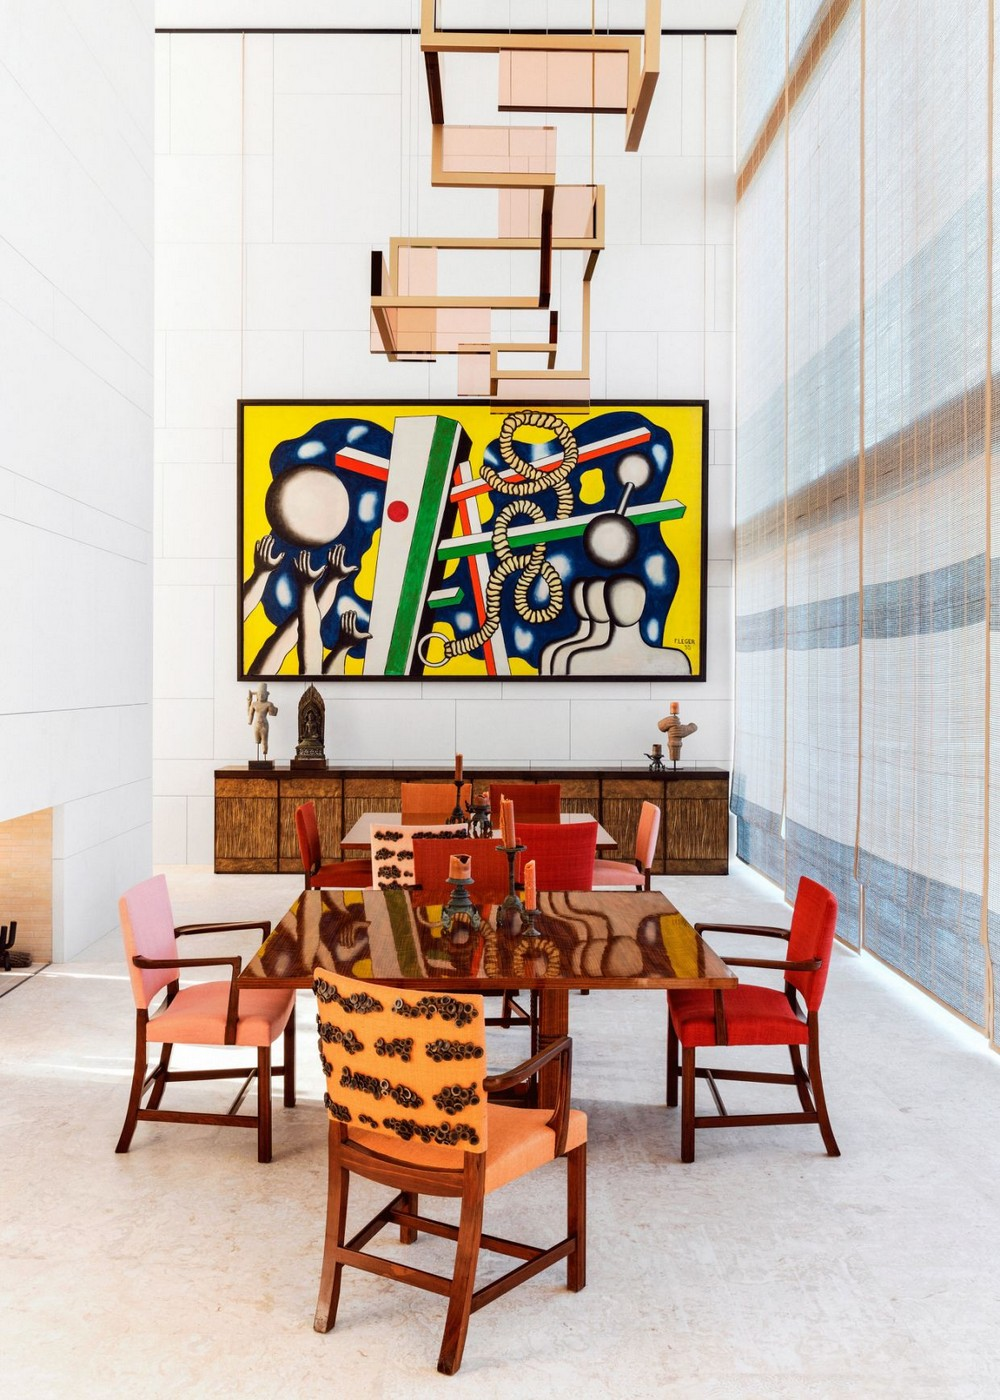 Materiality, Texture, Scale Light: Dining Room Projects by Peter Marino peter marino Materiality, Texture, Scale Light: Dining Rooms by Peter Marino 1 Yahoo News